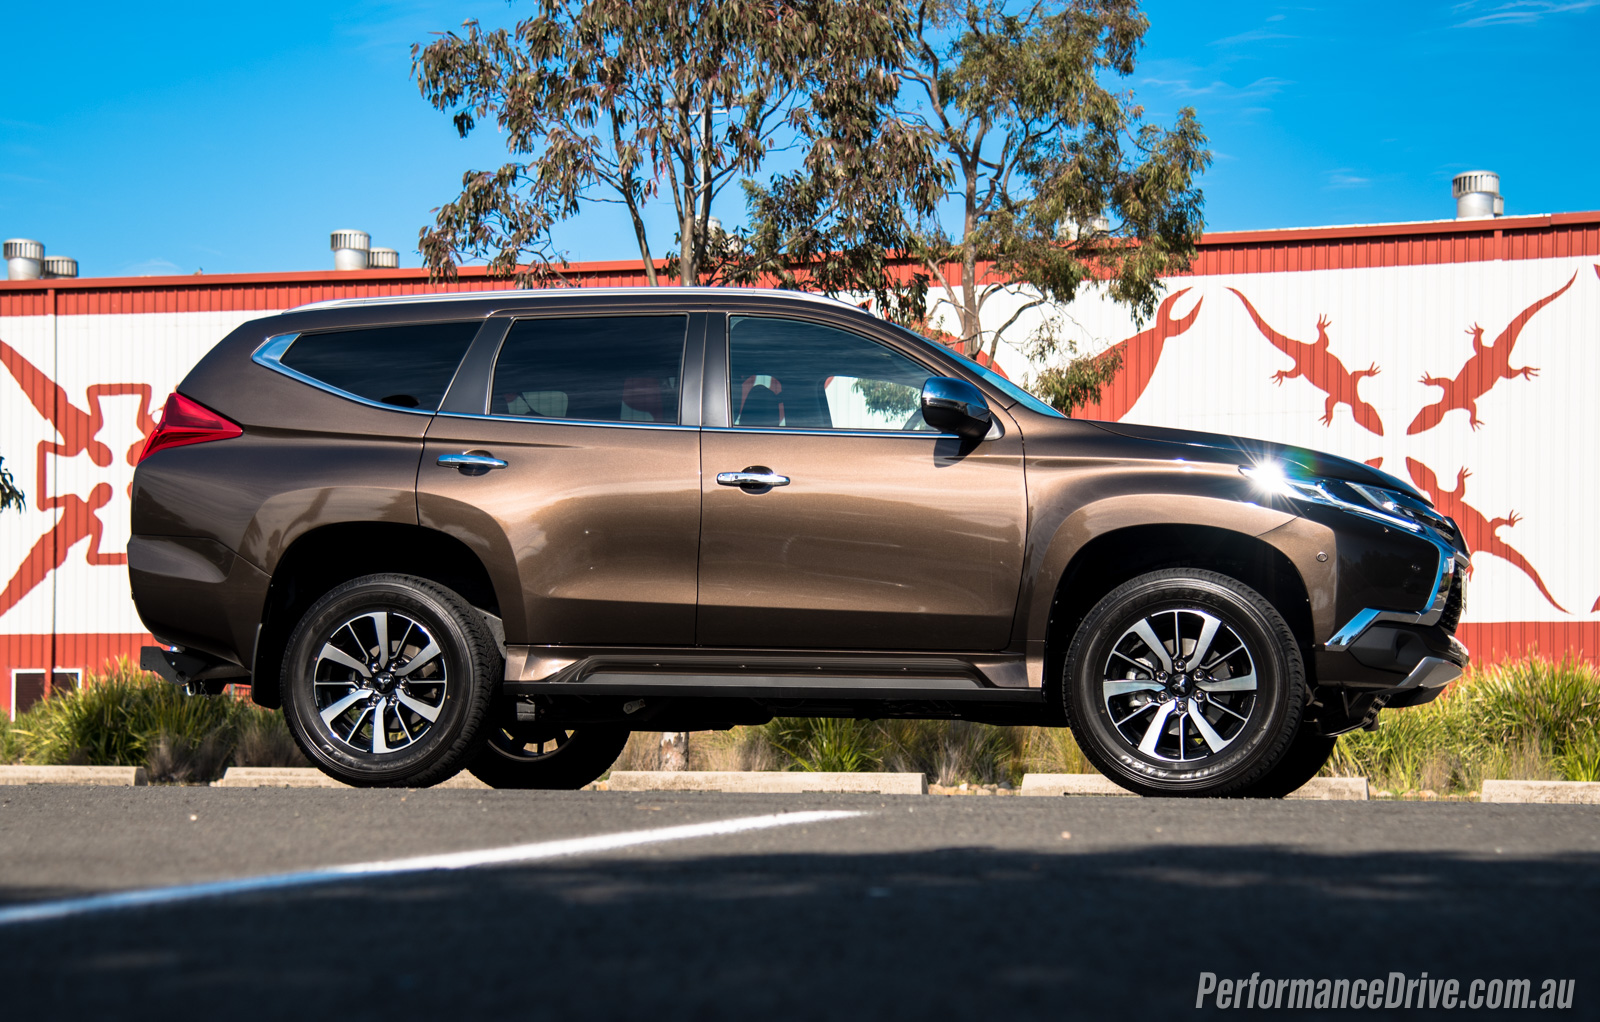 2016 mitsubishi pajero sport seven seat review. Black Bedroom Furniture Sets. Home Design Ideas